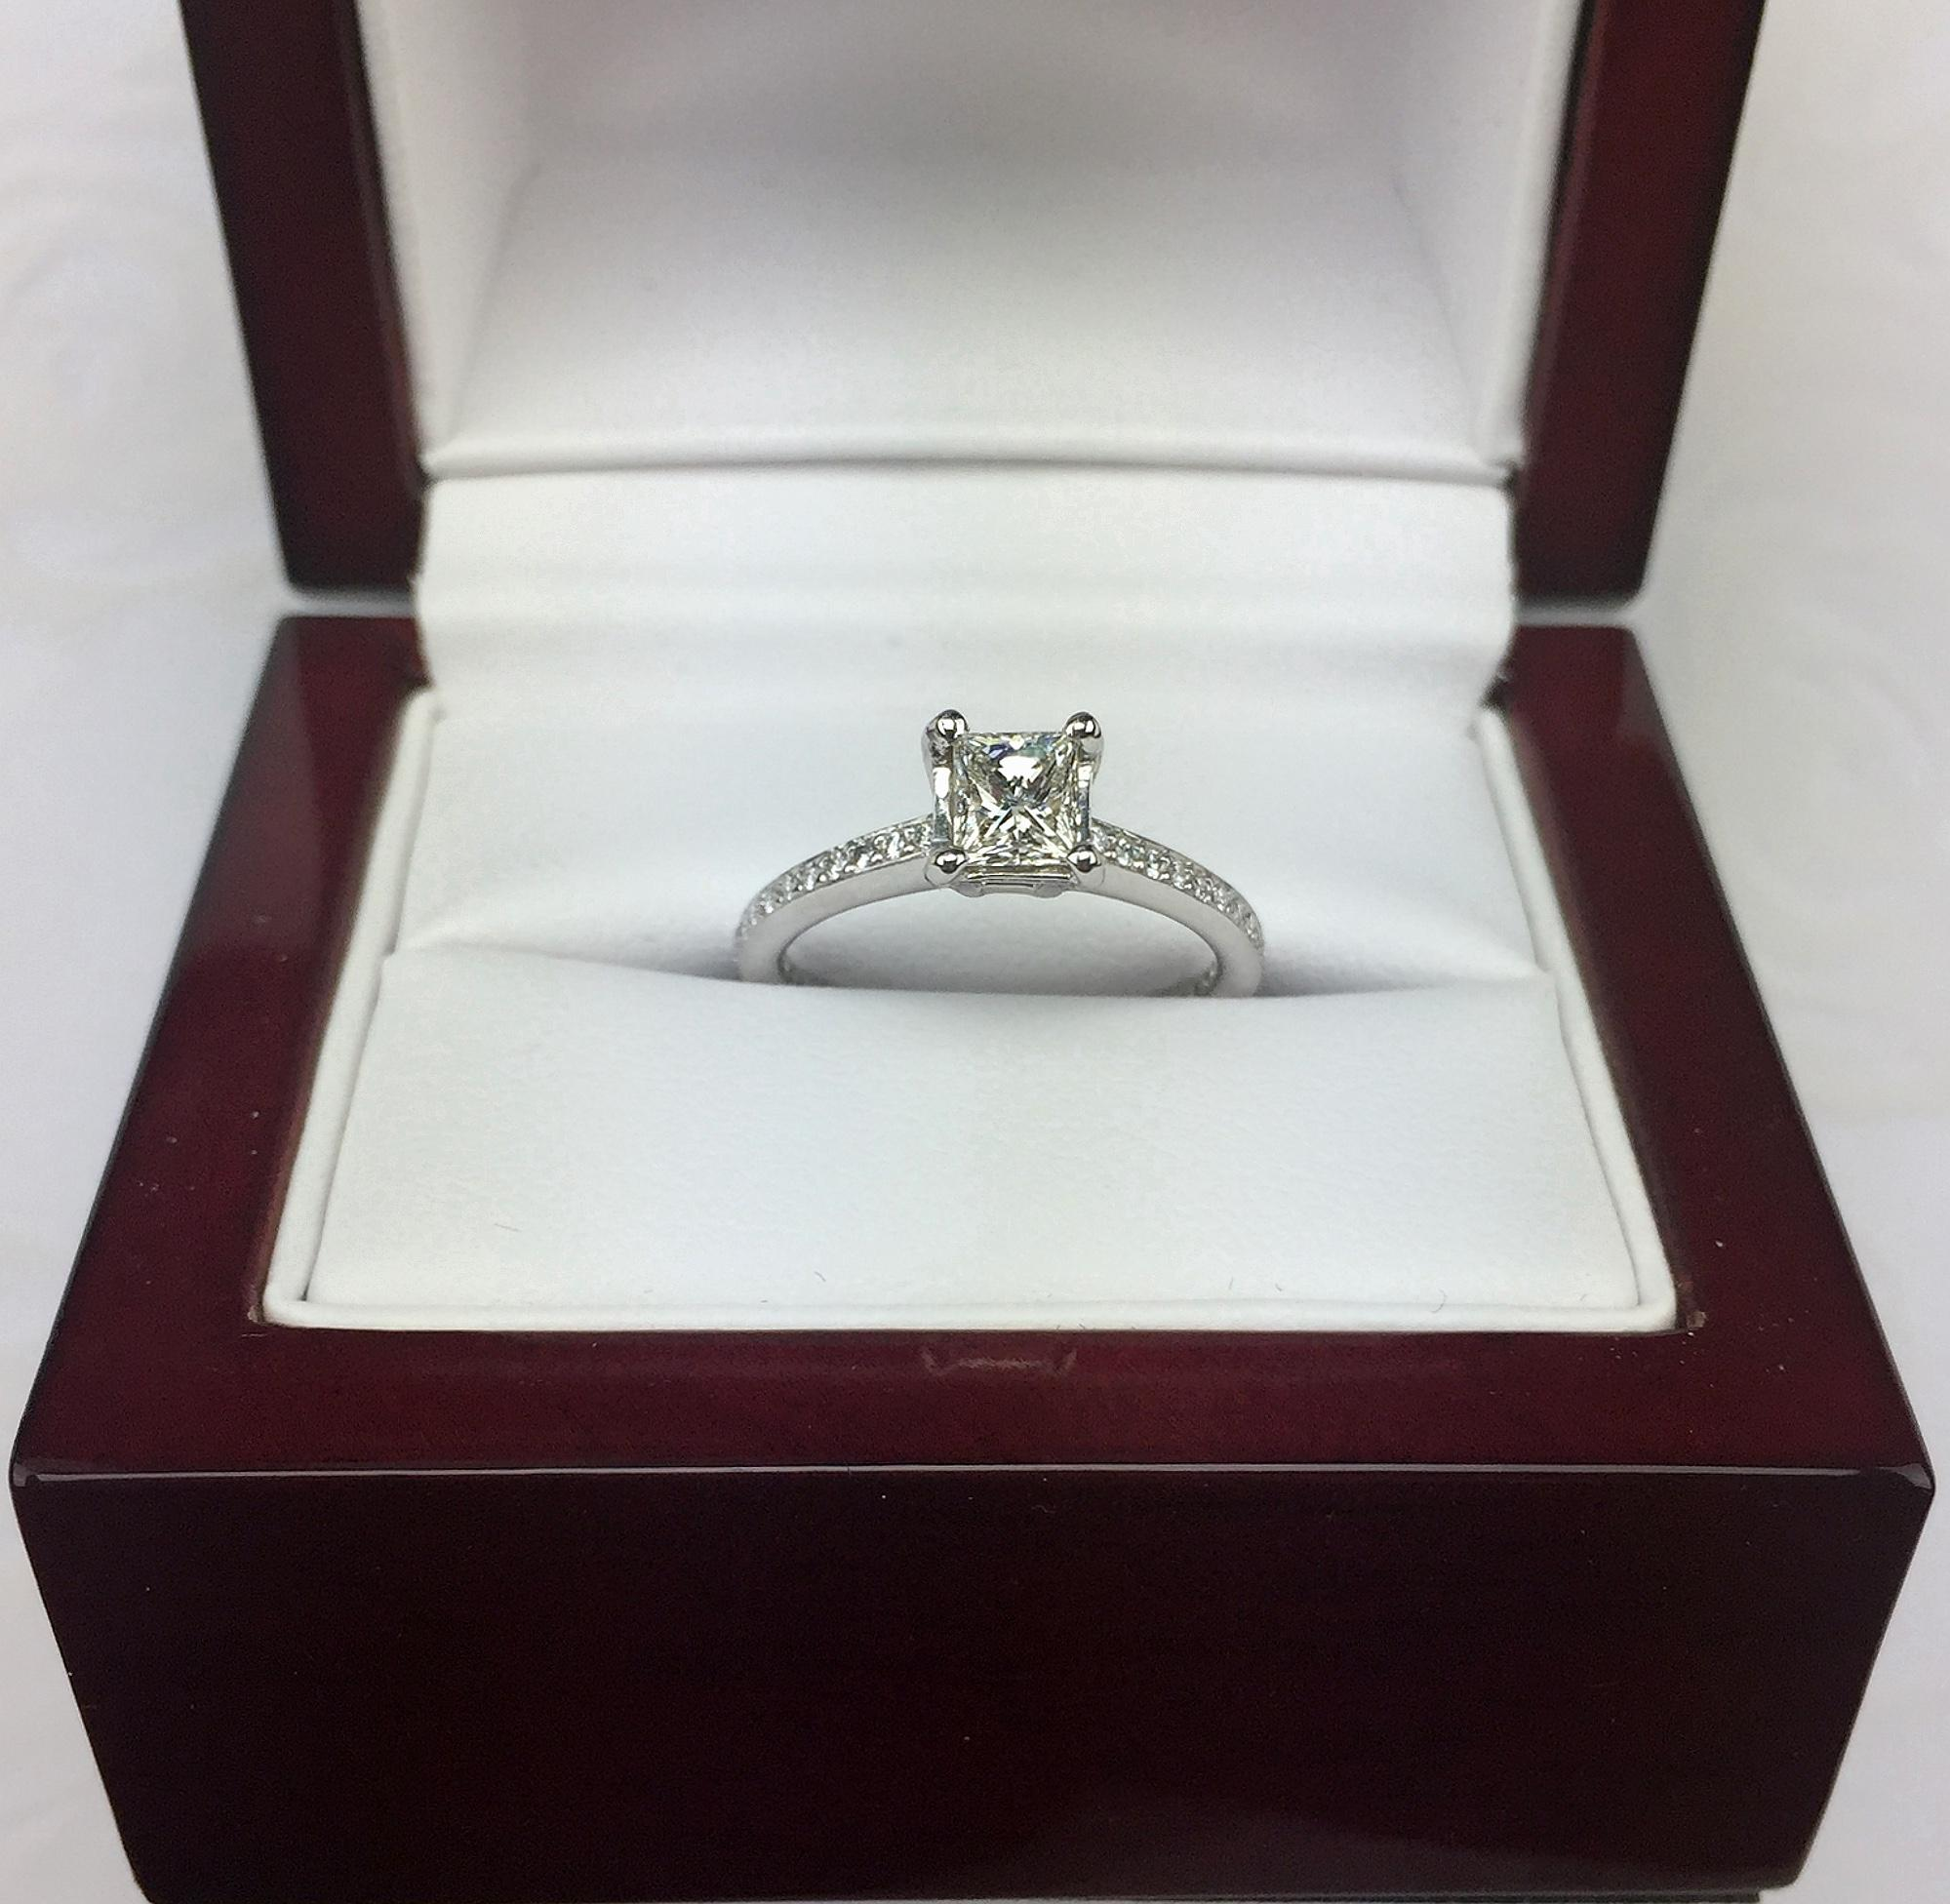 STUNNING Perfect 18kt Princess Cut Diamond Engagement Ring from